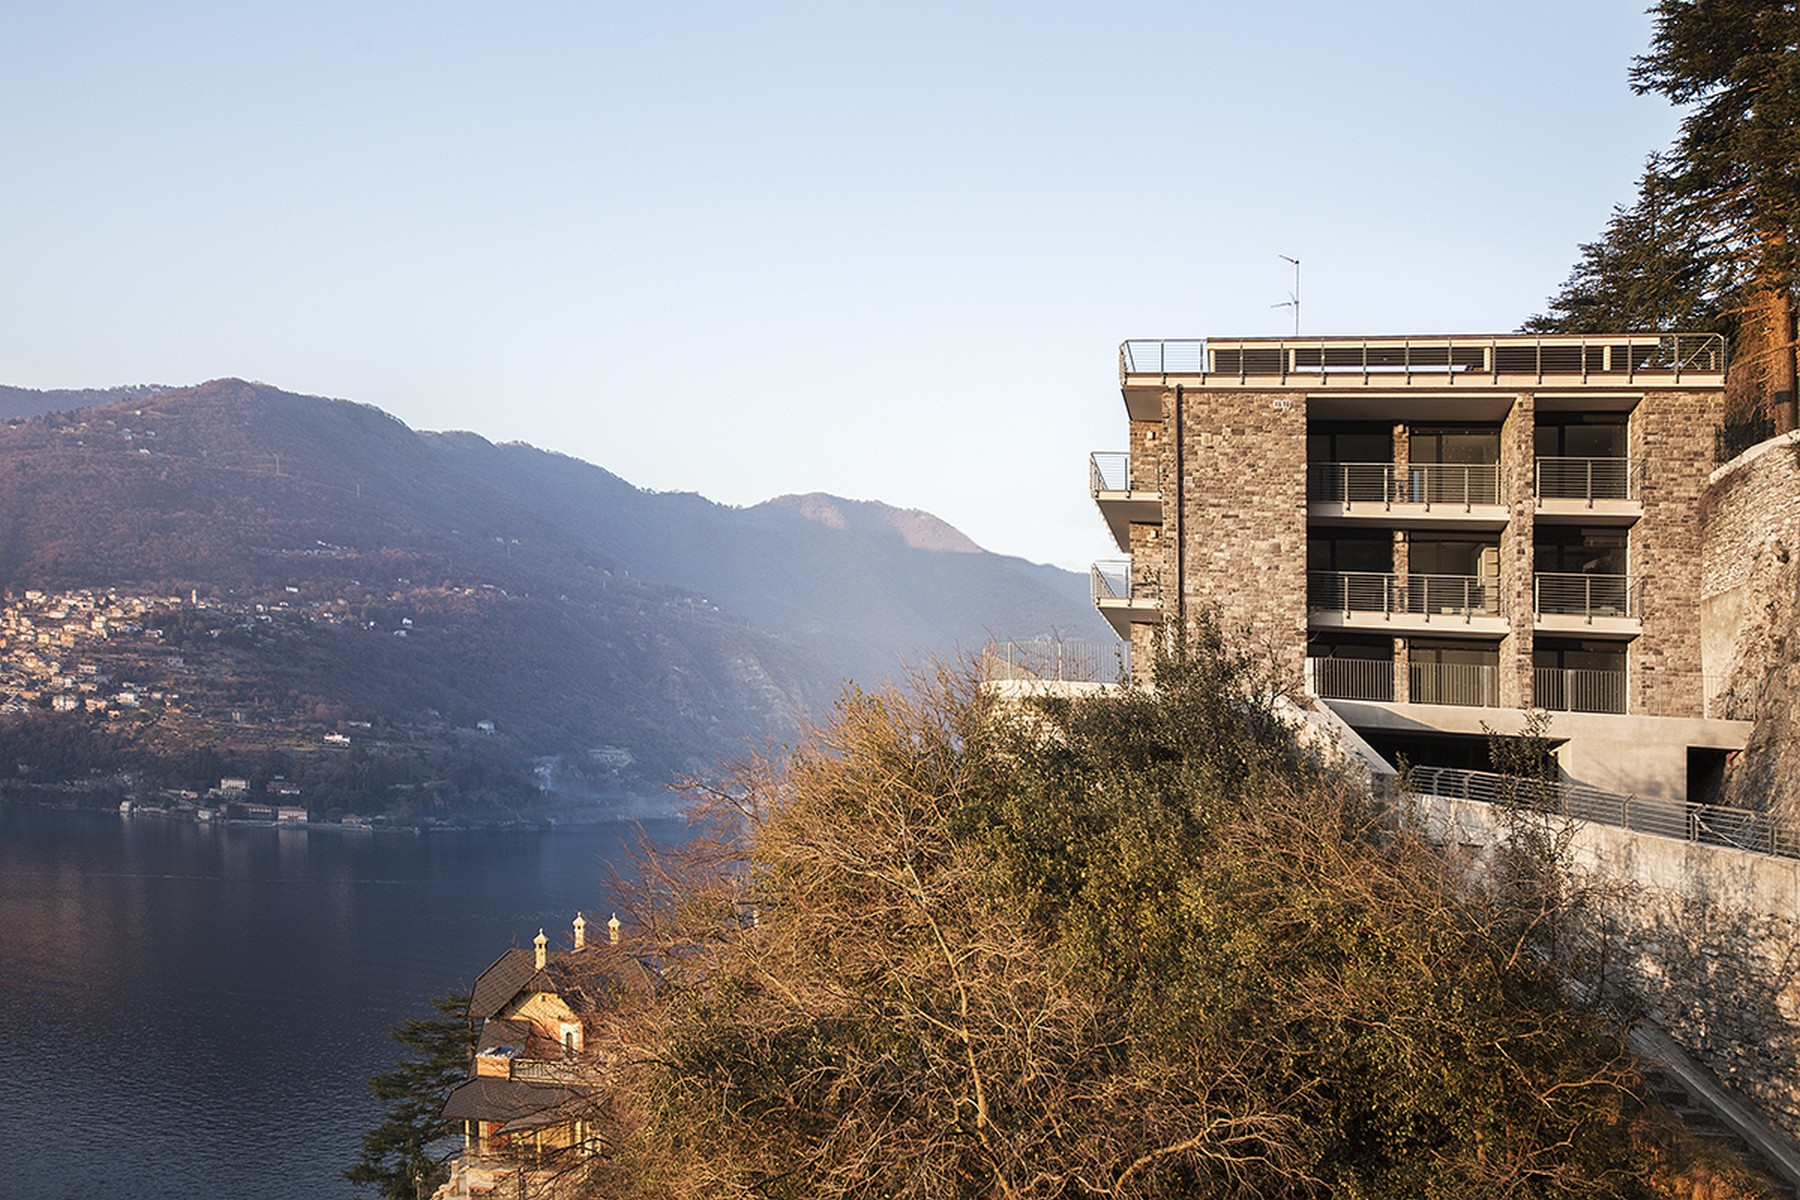 Apartment for Sale at Modern penthouse in a new construction building Blevio, Como, Italy